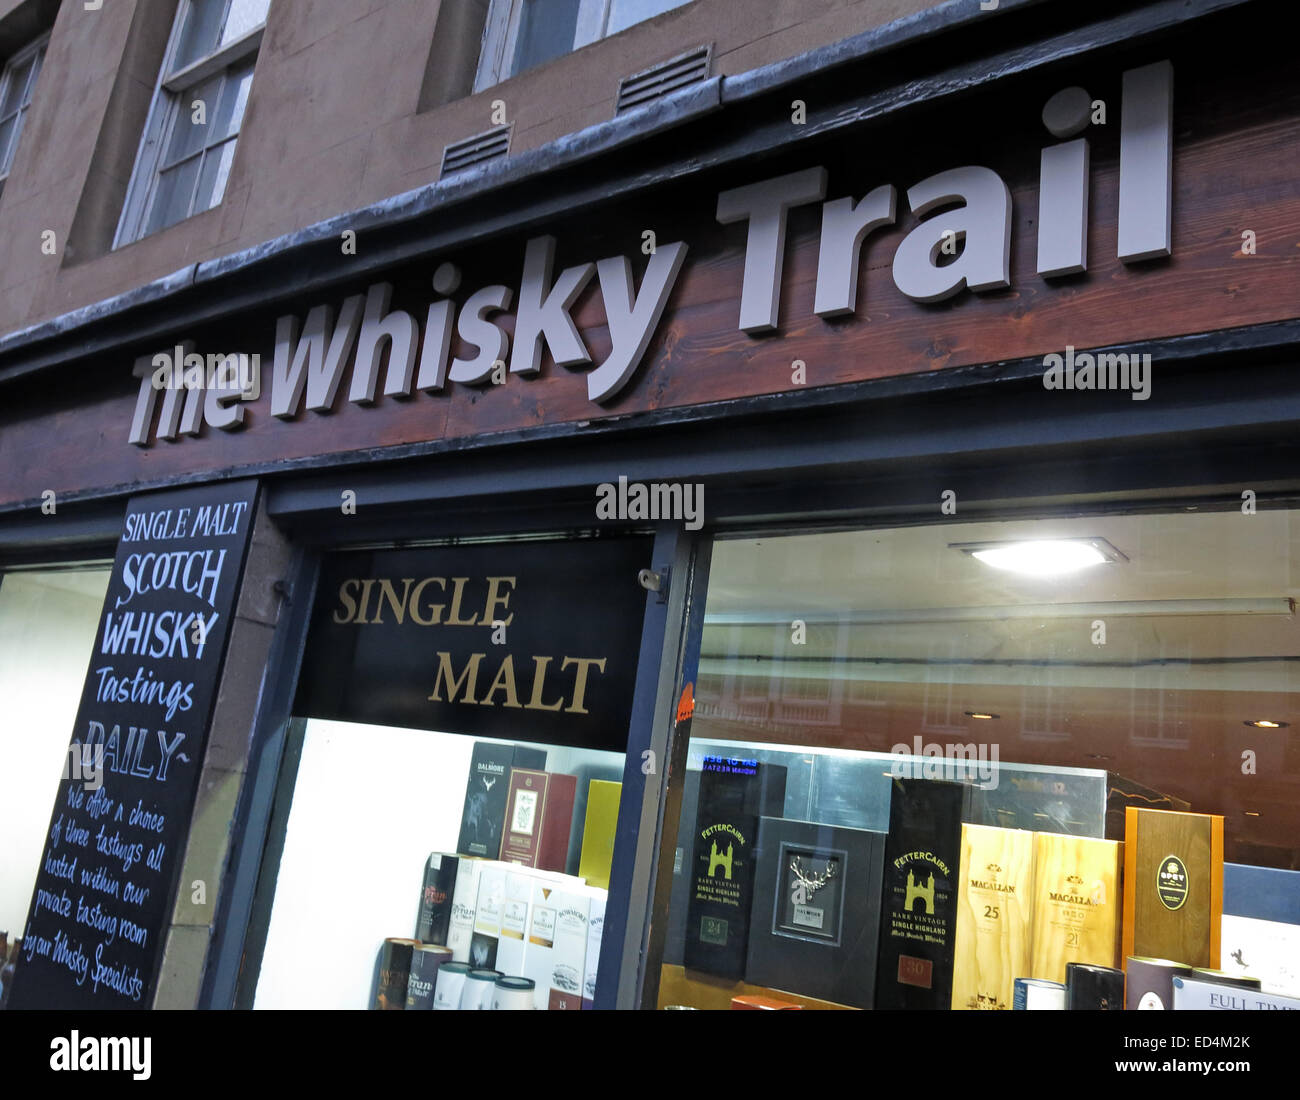 City,traditional,food,drink,alcohol,tourist,tourism,single,malt,single malt,retail,retailing,street,sign,Royal,mile,high St,Scots,Scottish,abuse,Gotonysmith,Buy Pictures of,Buy Images Of